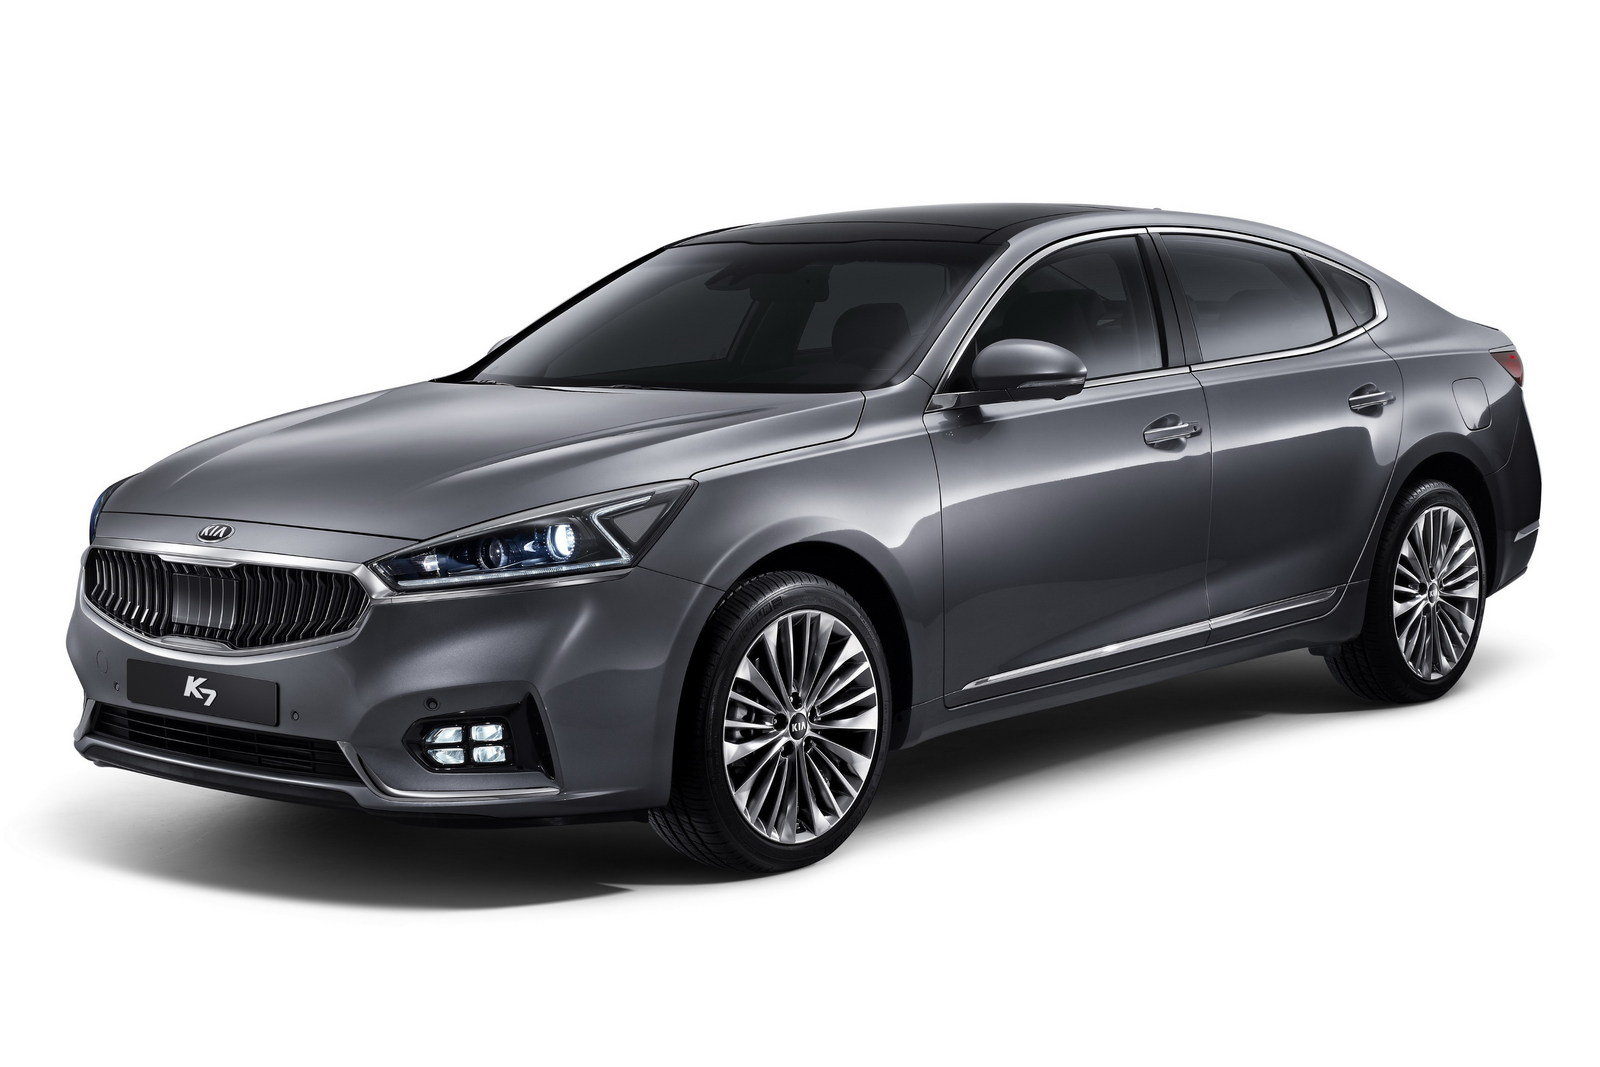 2017 kia cadenza picture 657371 car review top speed. Black Bedroom Furniture Sets. Home Design Ideas